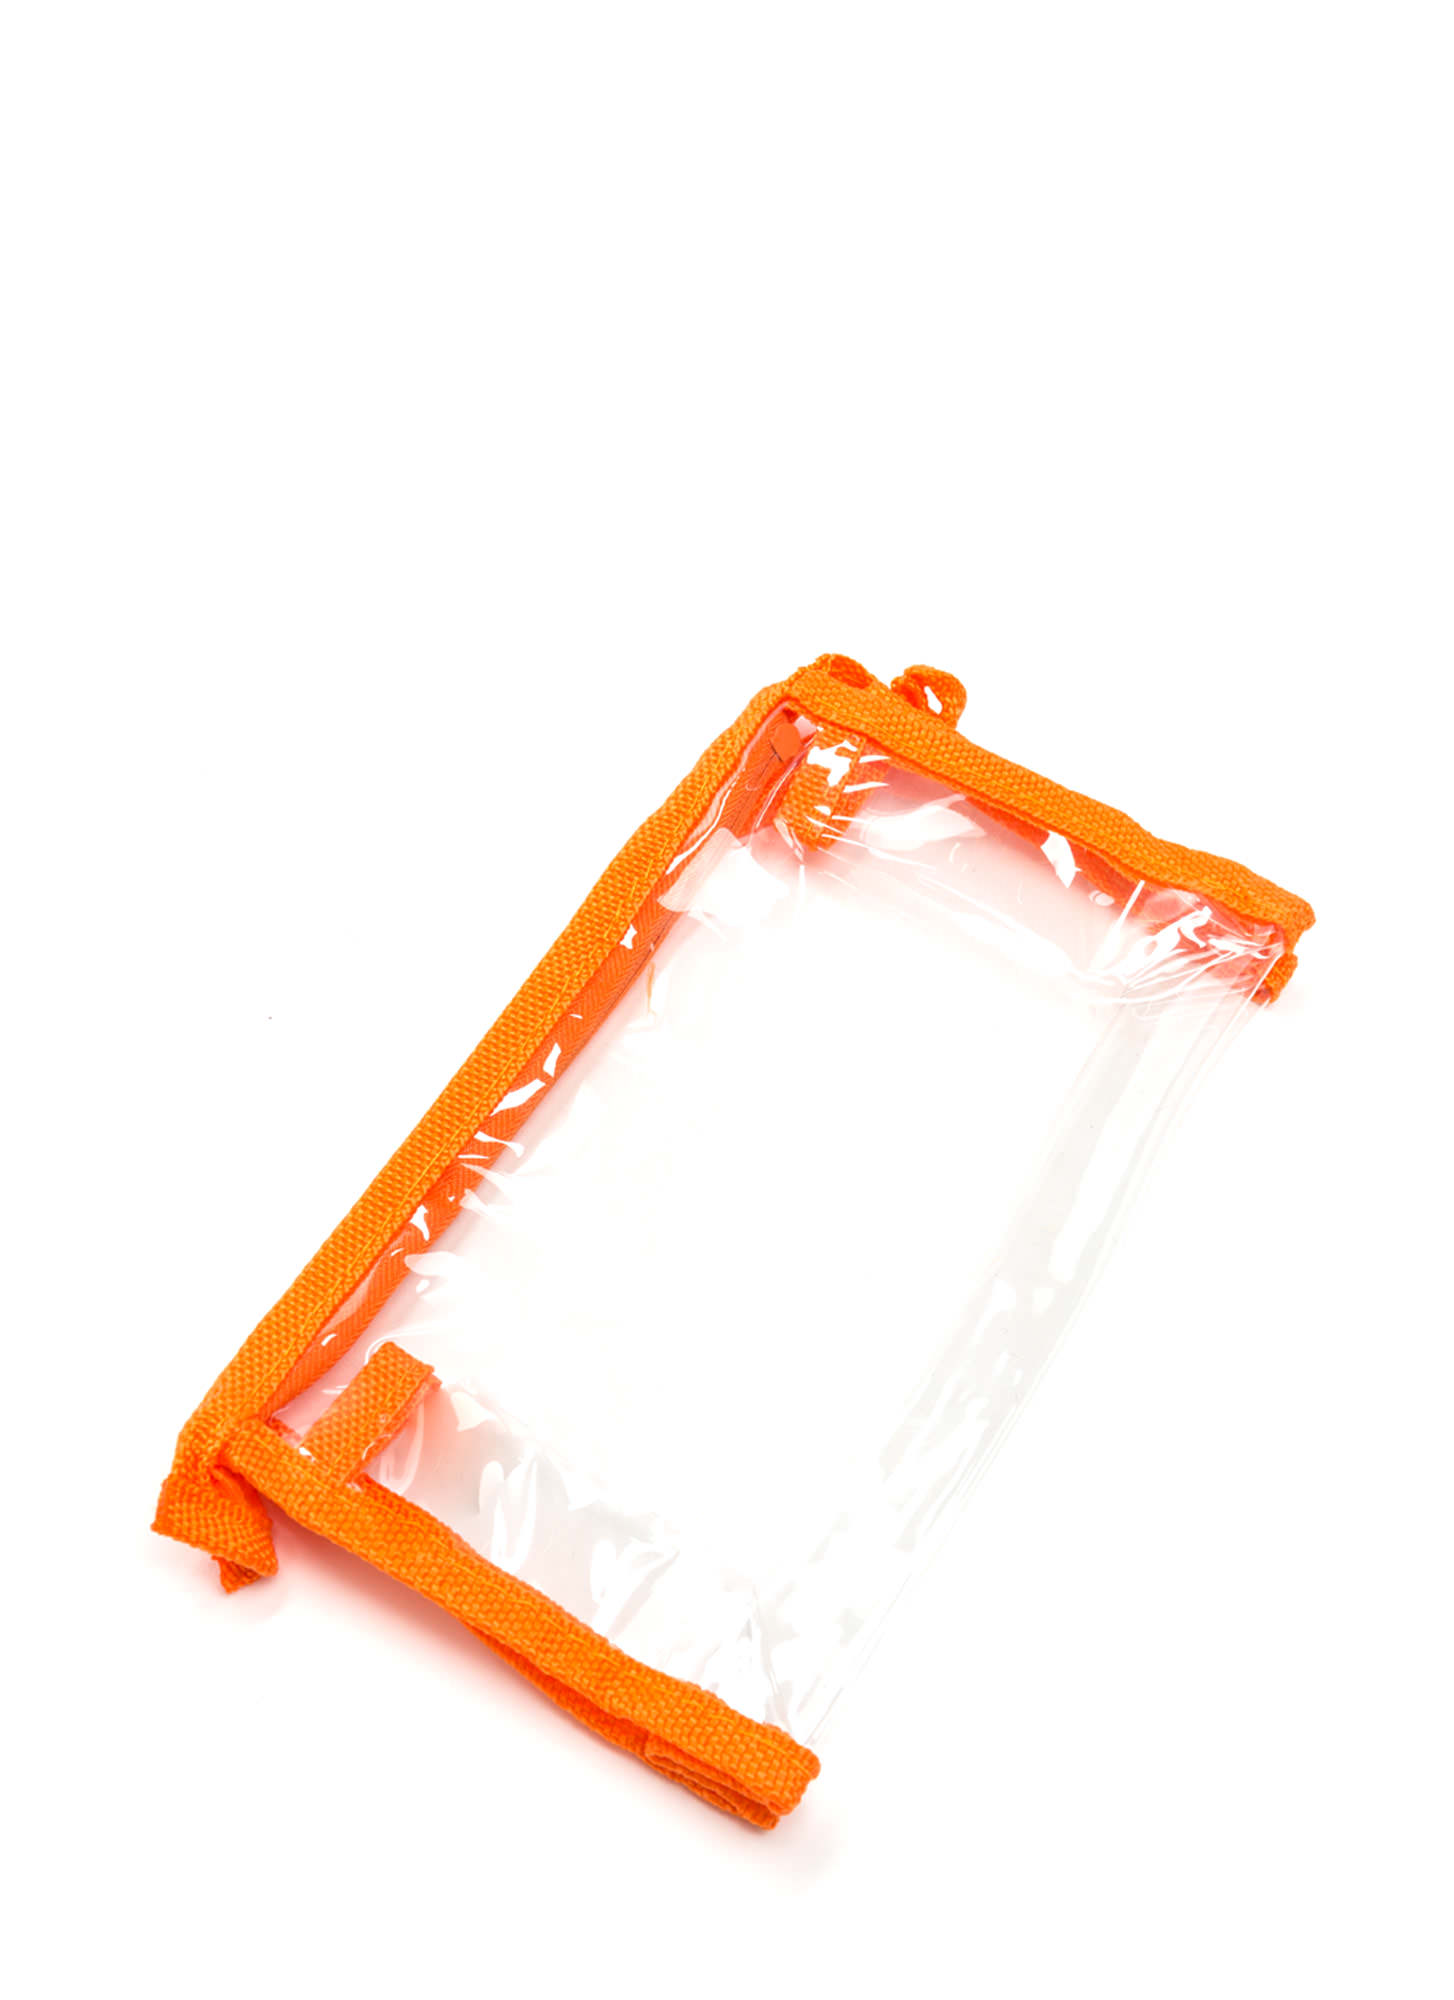 In Sight Zippered Pouch ORANGECLEAR